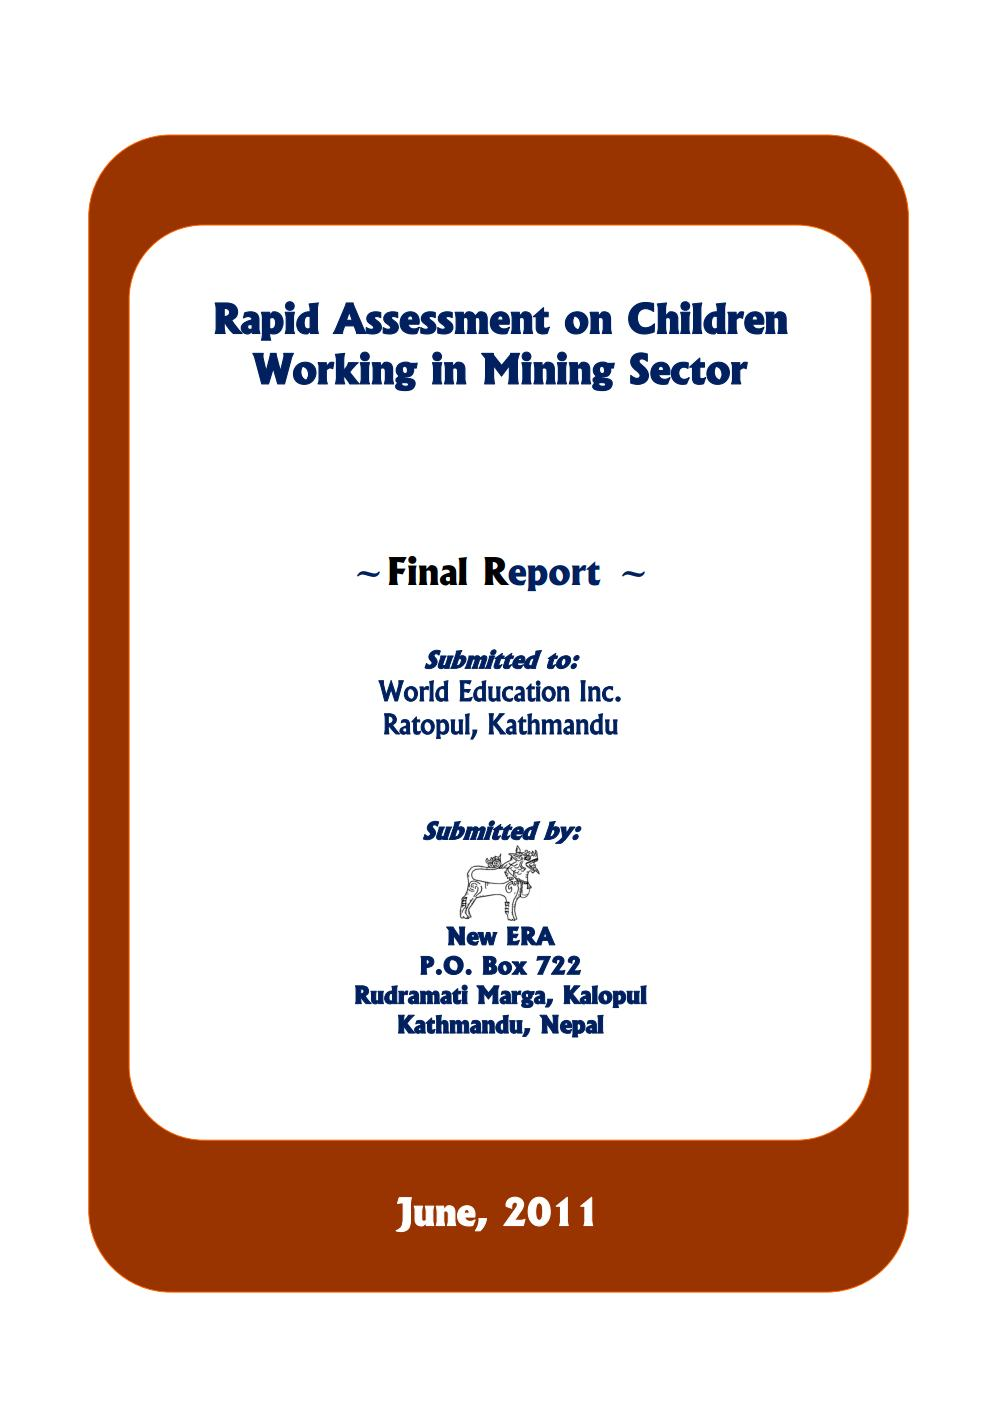 Rapid Assessment on Children Working in Mining Sector